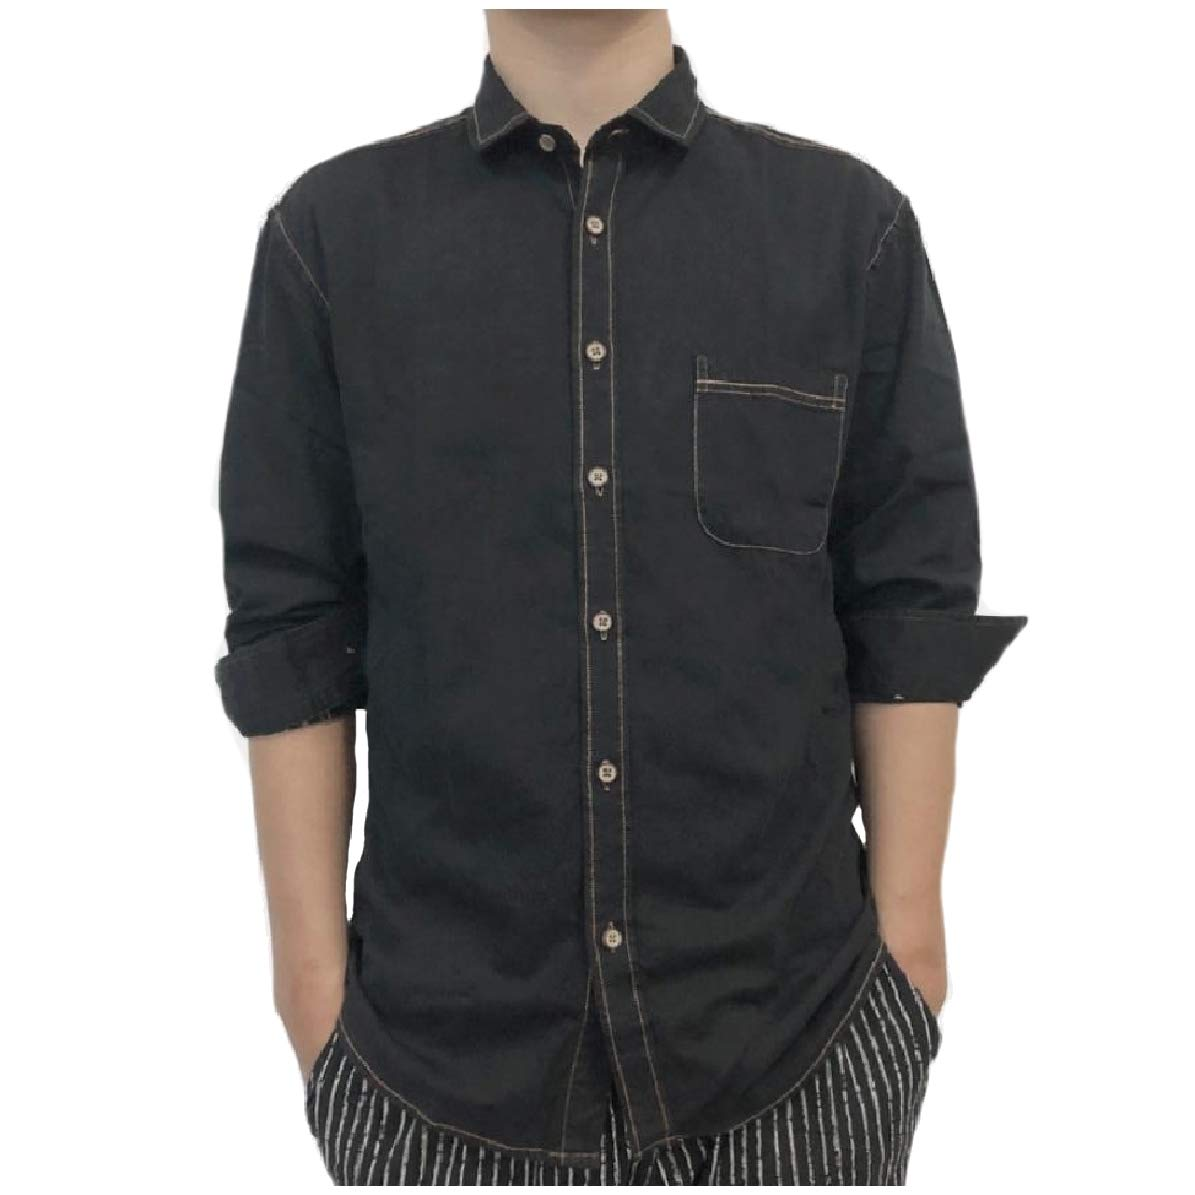 Comaba Mens Long-Sleeve Fine Cotton Big and Tall Button Up Work Shirt